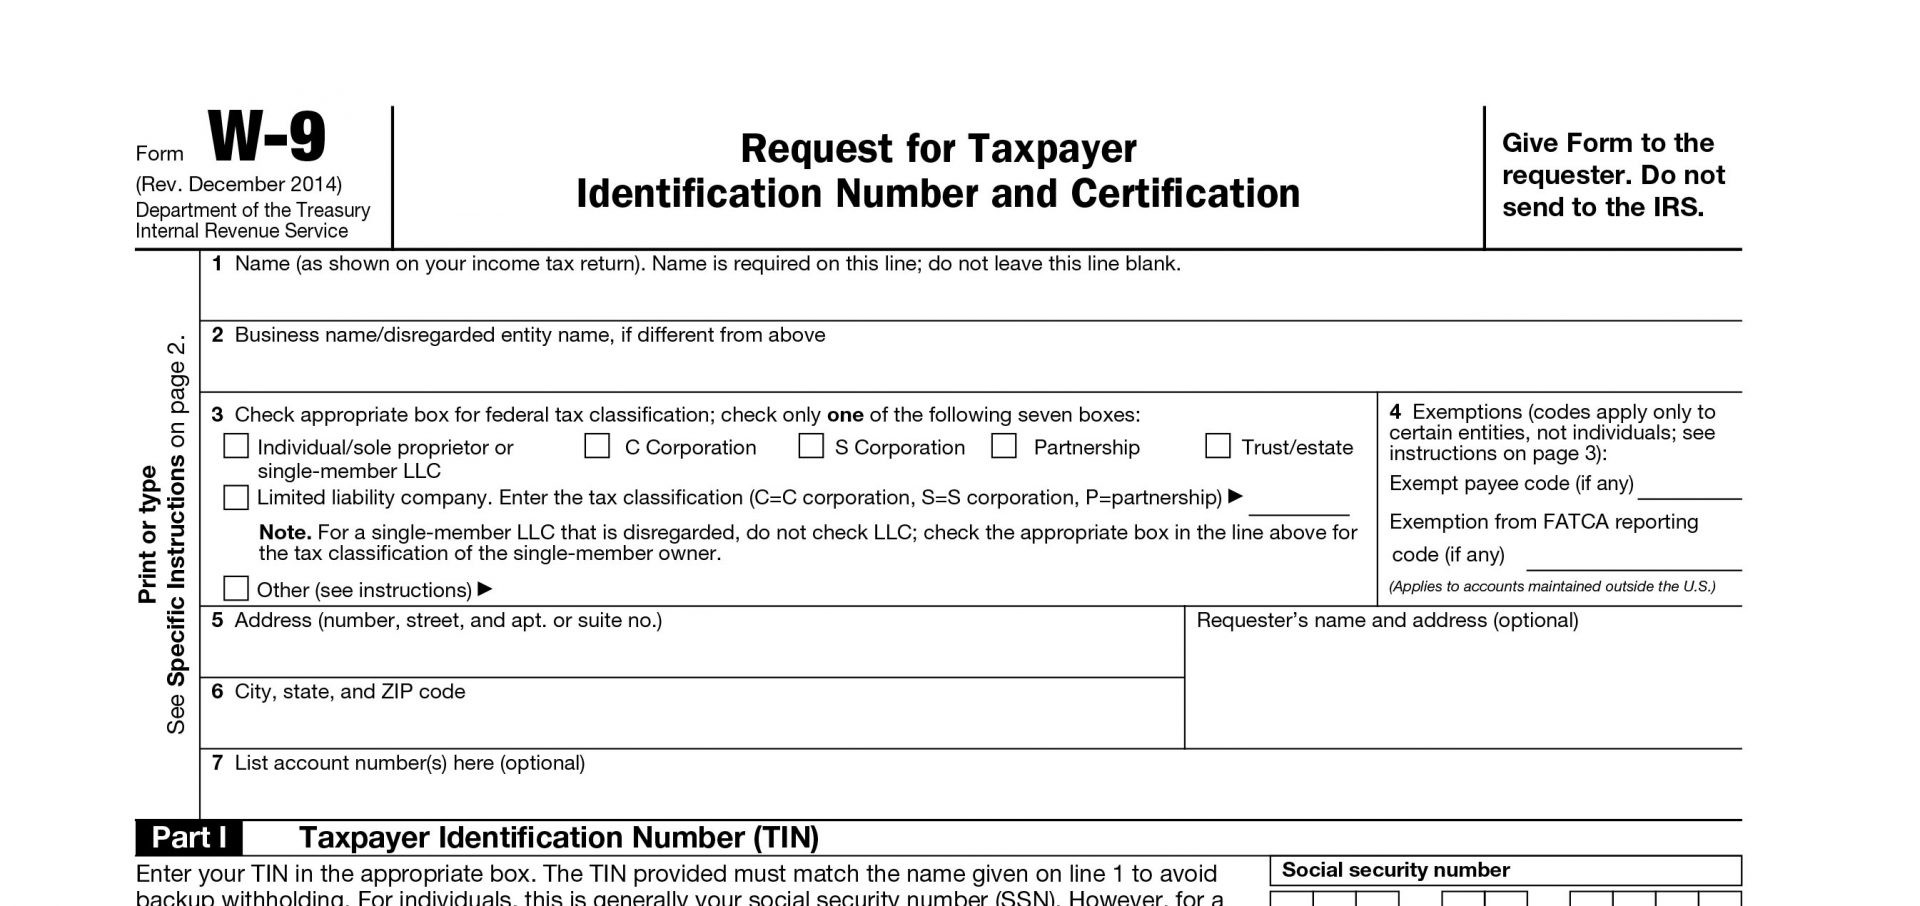 Printable Irs W-9 Blank 2019 - 2020 For Free Use-W 9 Form 2020 Printable Free Blank